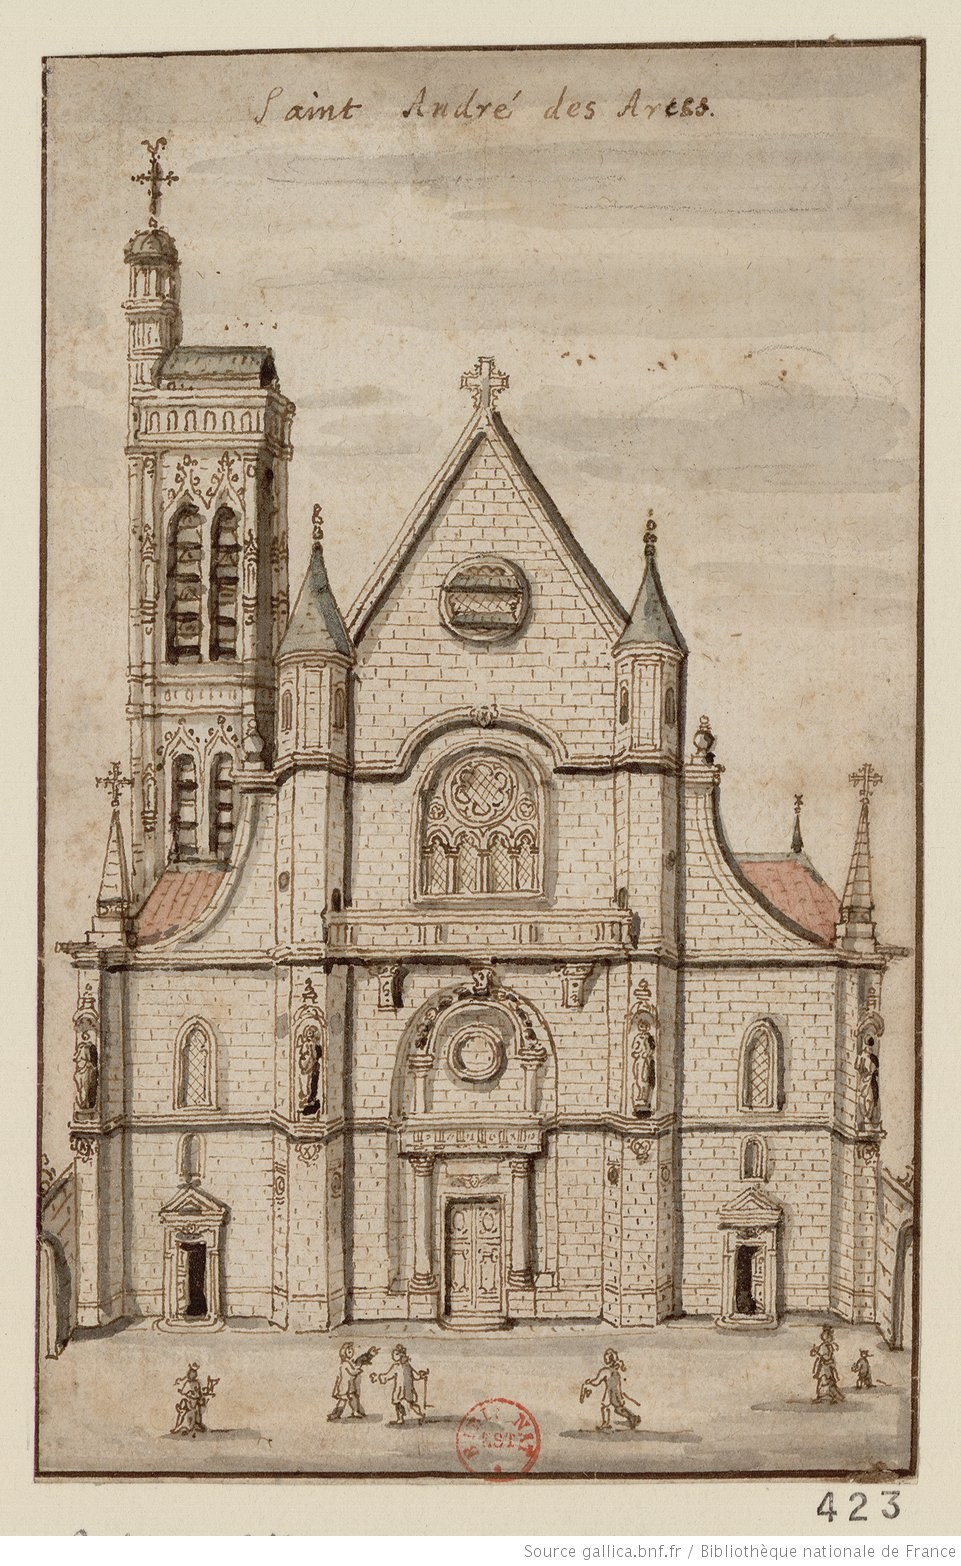 A seventeenth-century drawing of the Church of Saint-André-des-Arts where Voltaire was christened in November 1694. The church was demolished in the nineteenth century. Source: http://gallica.bnf.fr/ark:/12148/btv1b103027821/f1.item.r=église%20saint%20andré%20des%20arts